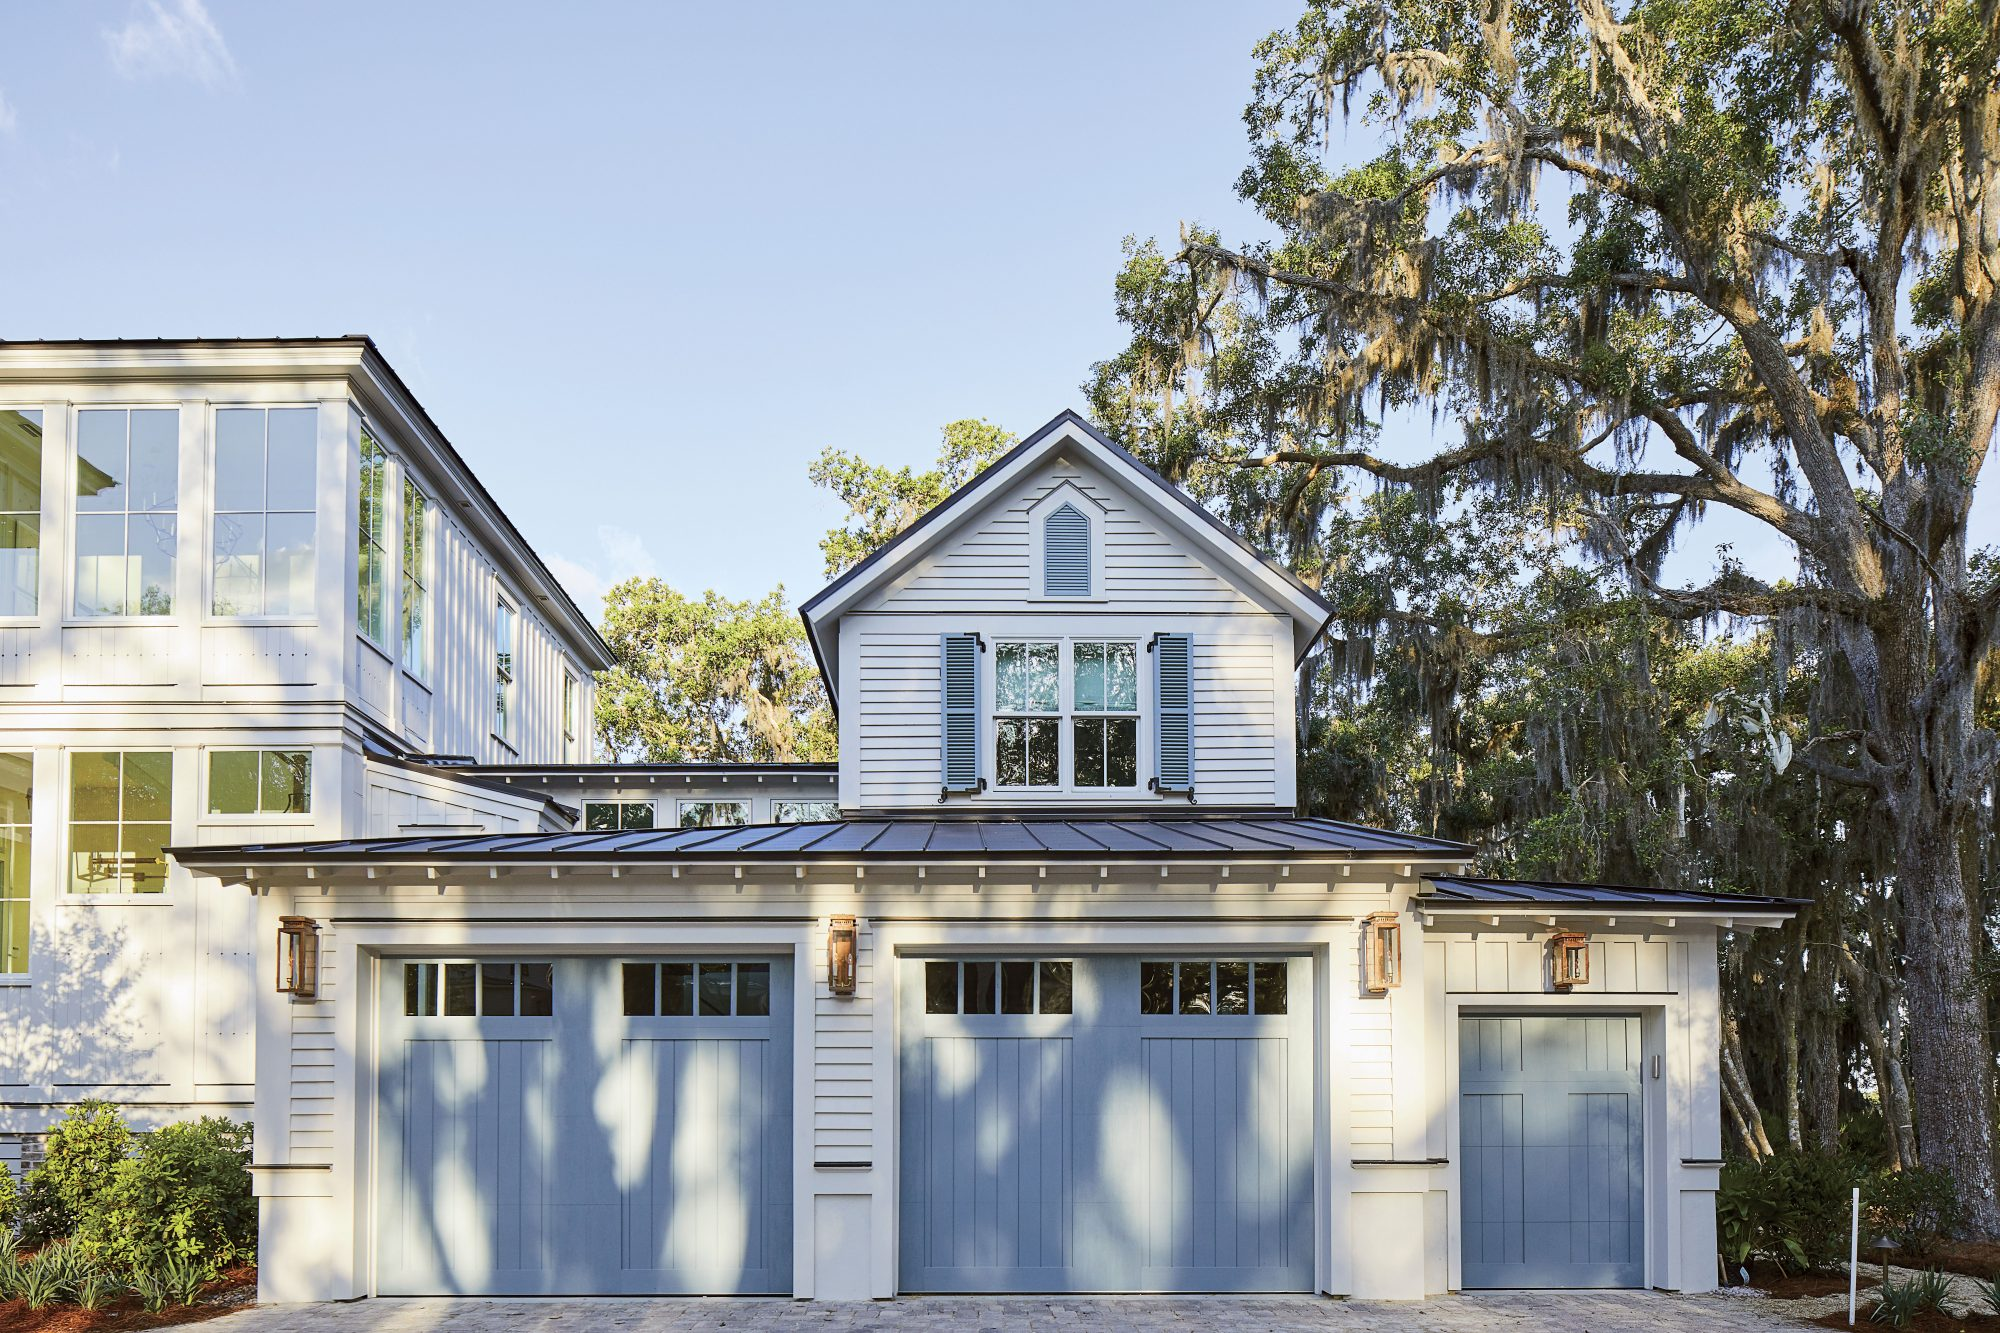 2019 Idea House Garage Doors